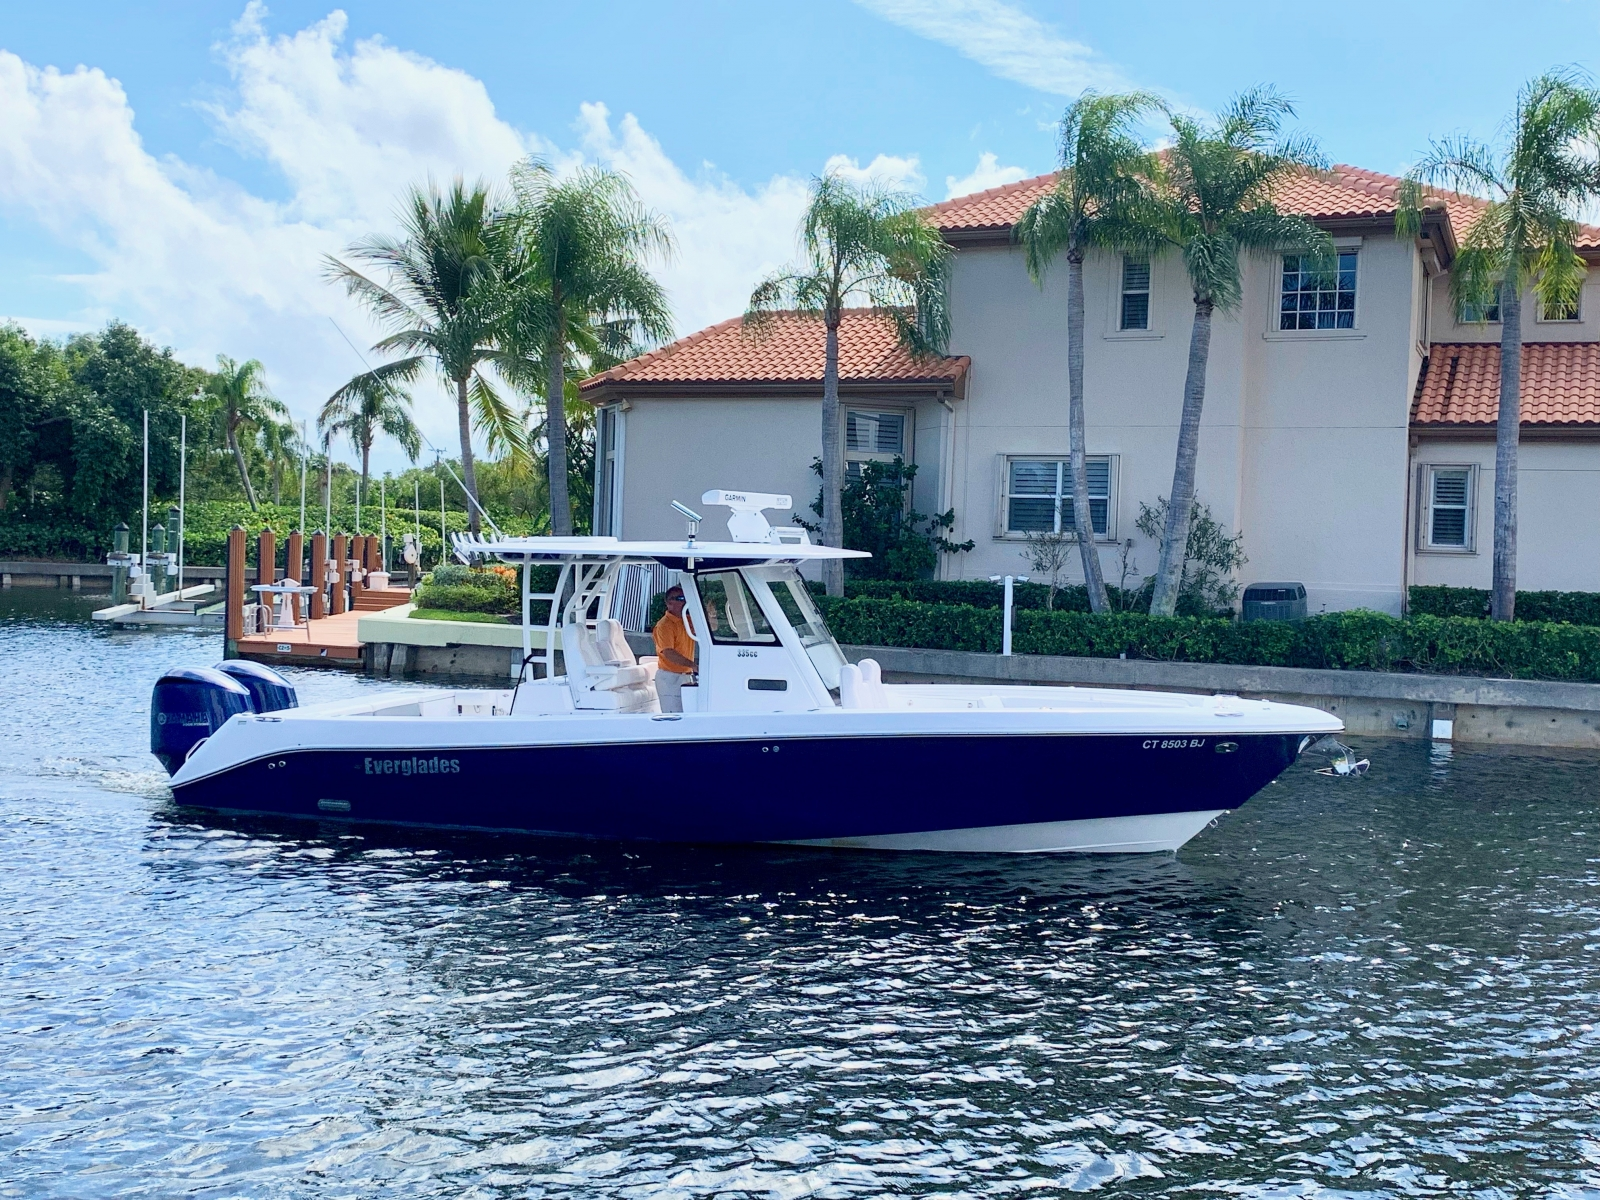 Blue hulled 2019 Everglades 335 on the water